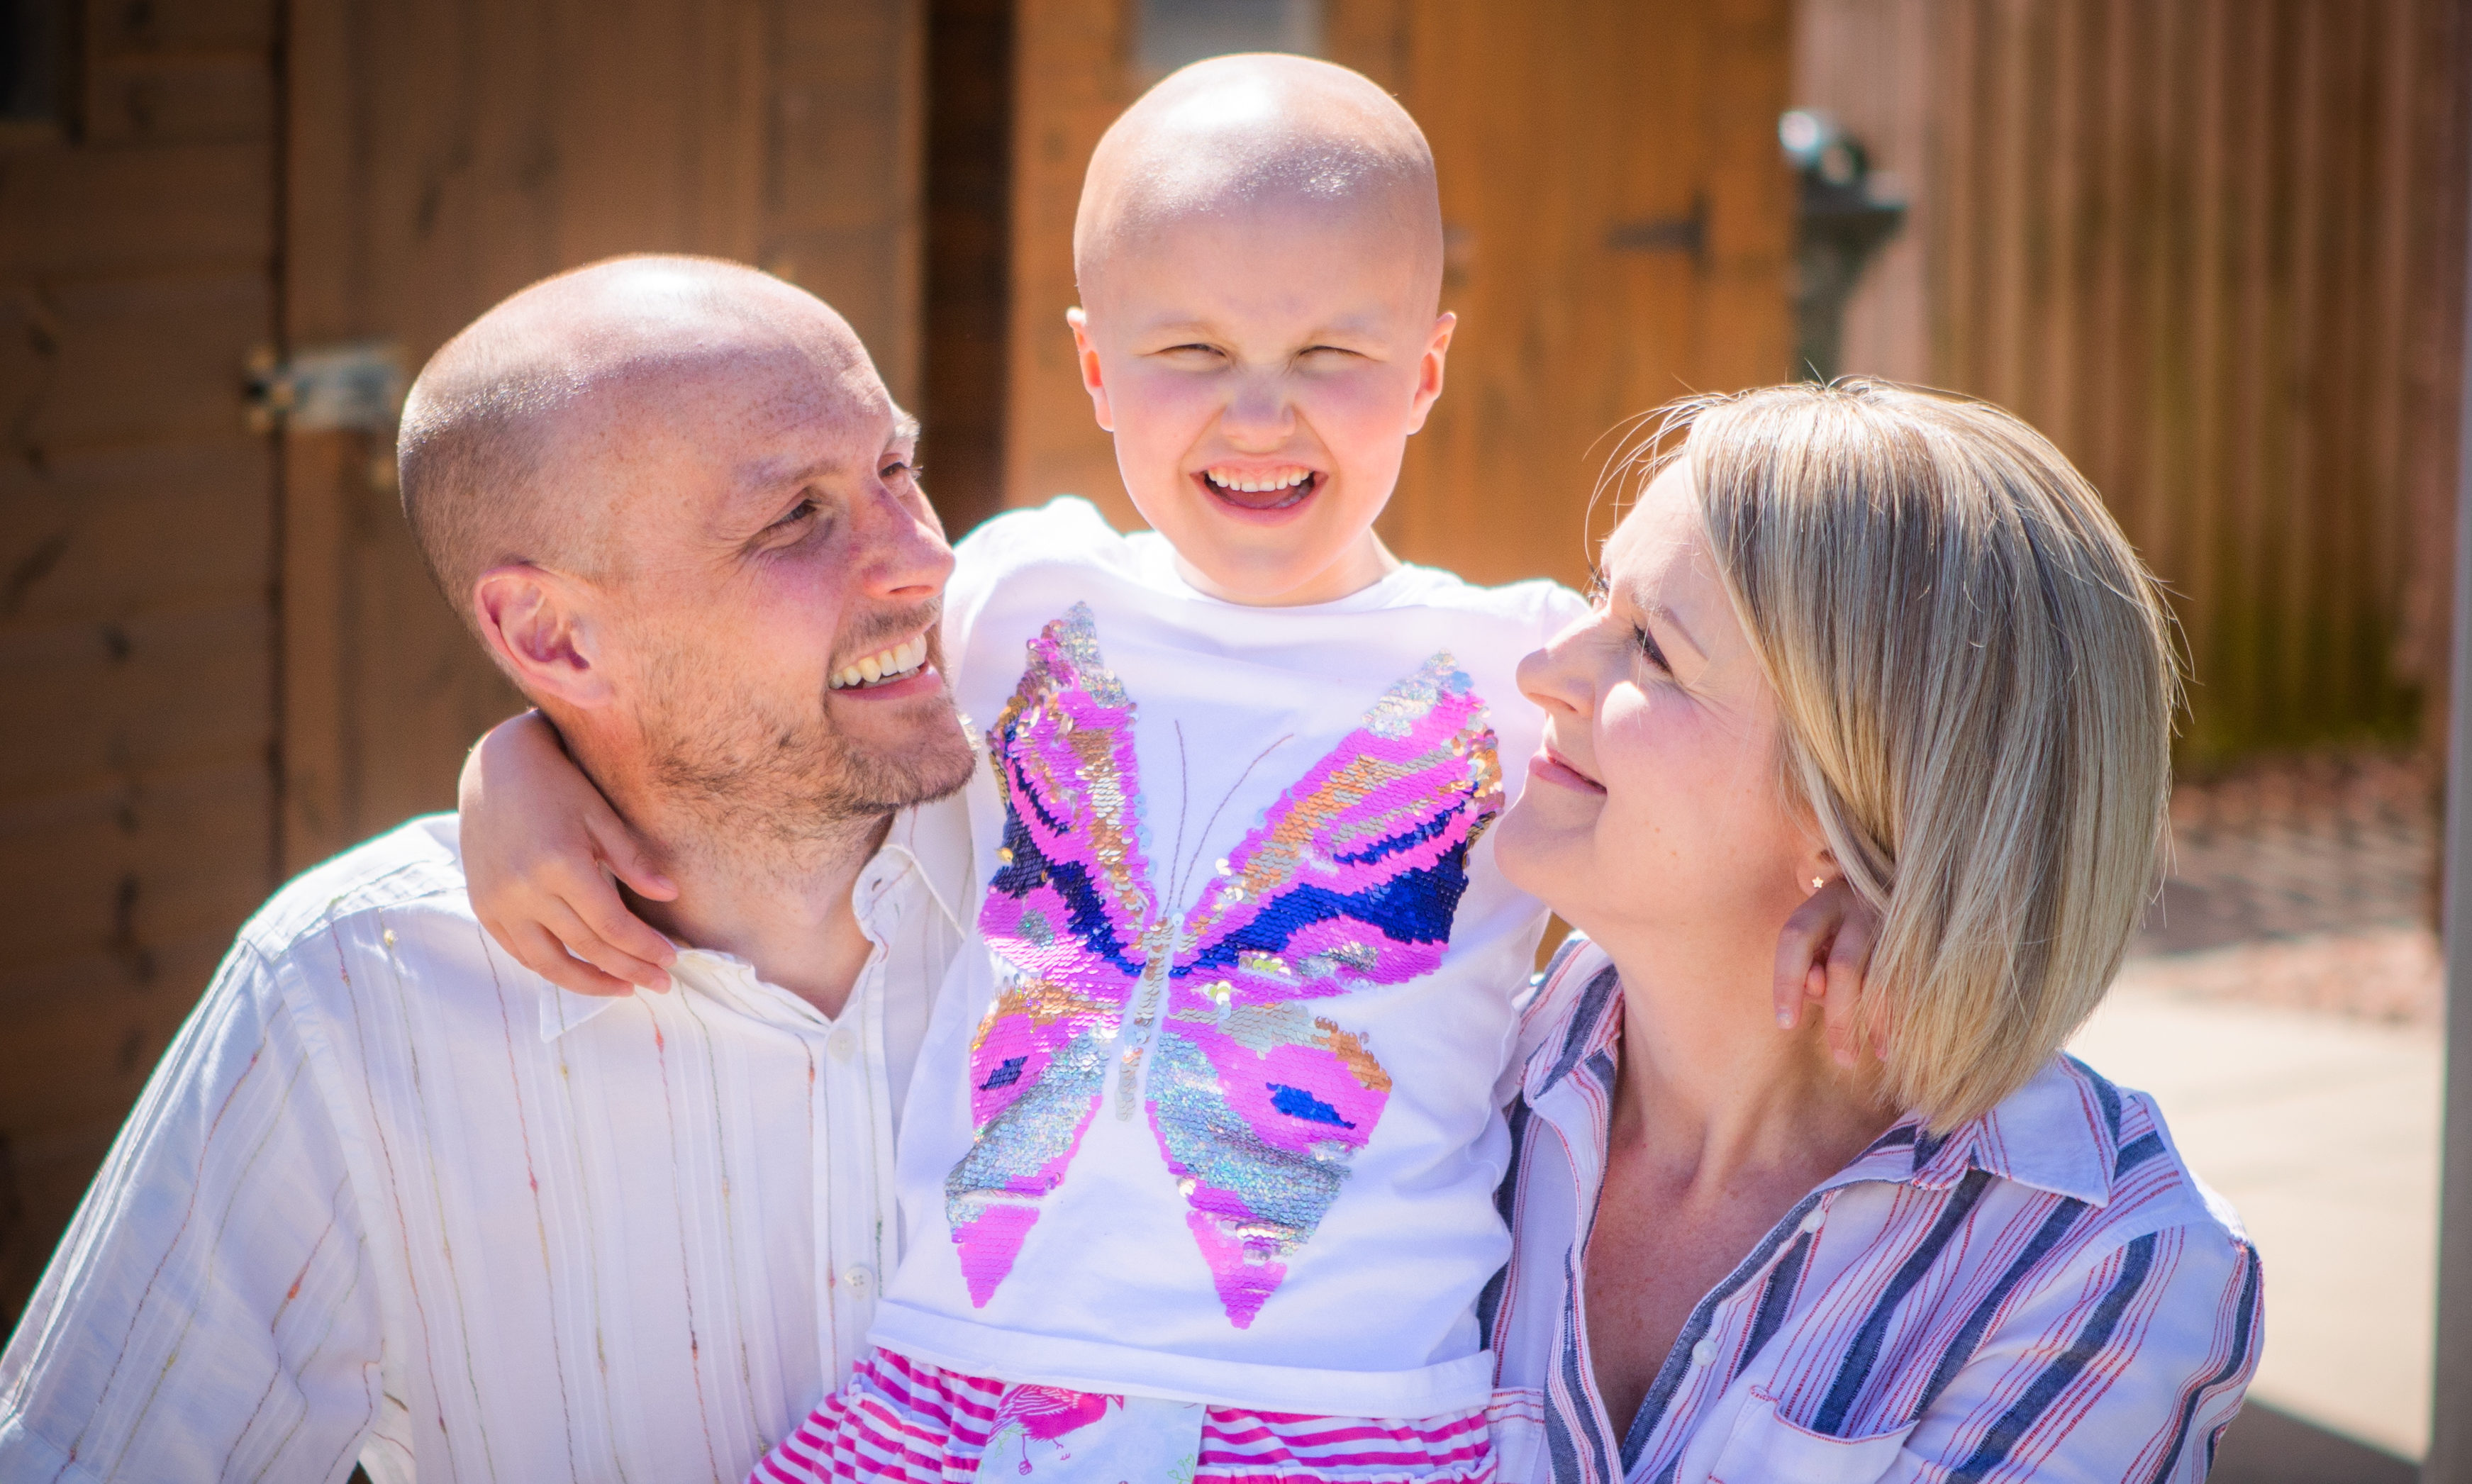 Ruby Stewart with parents Andy and Claire at home in Inchture, June 2019